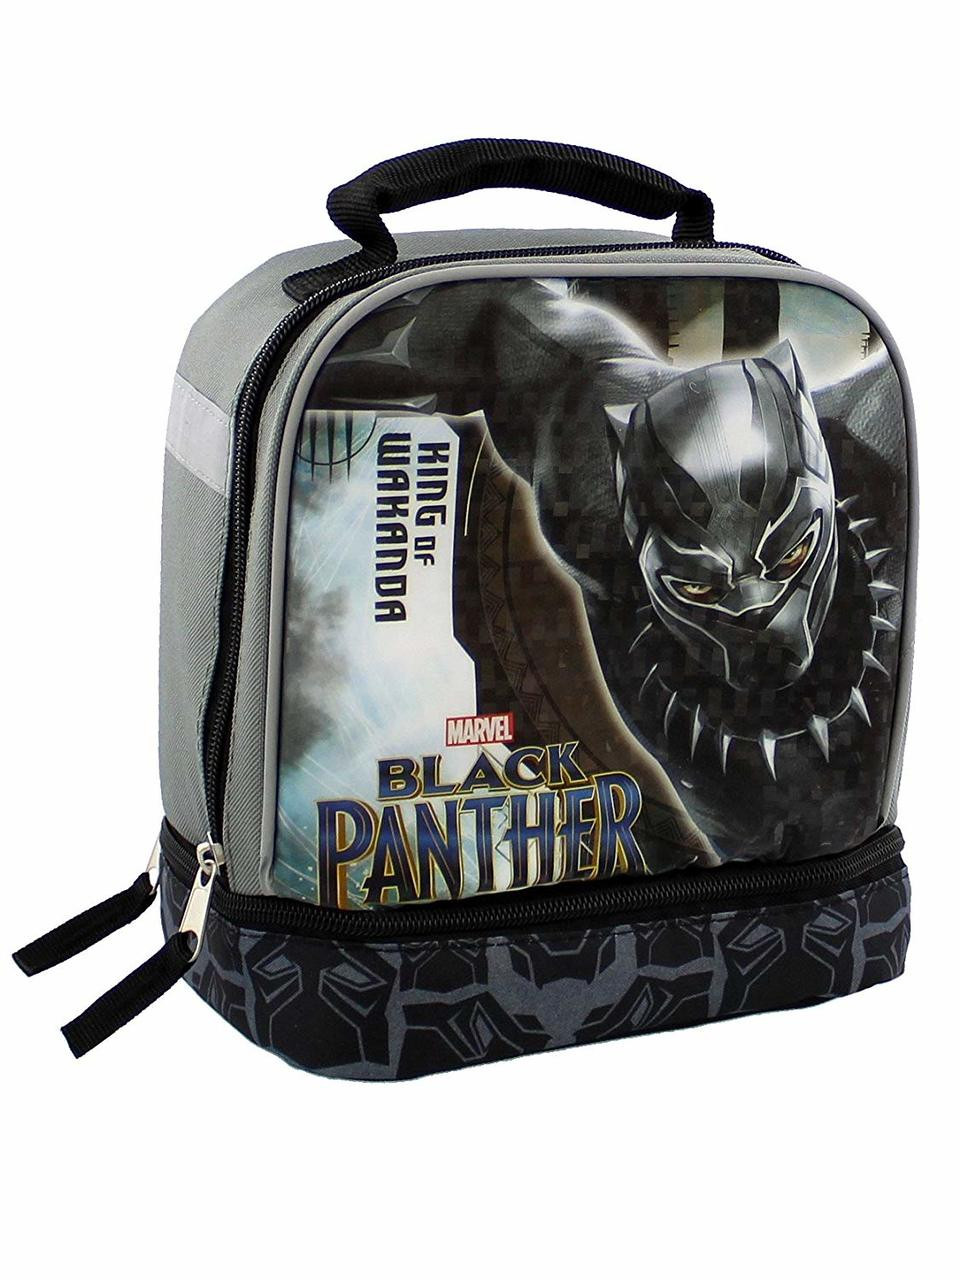 Black Panther dual compartment insulated lunch box